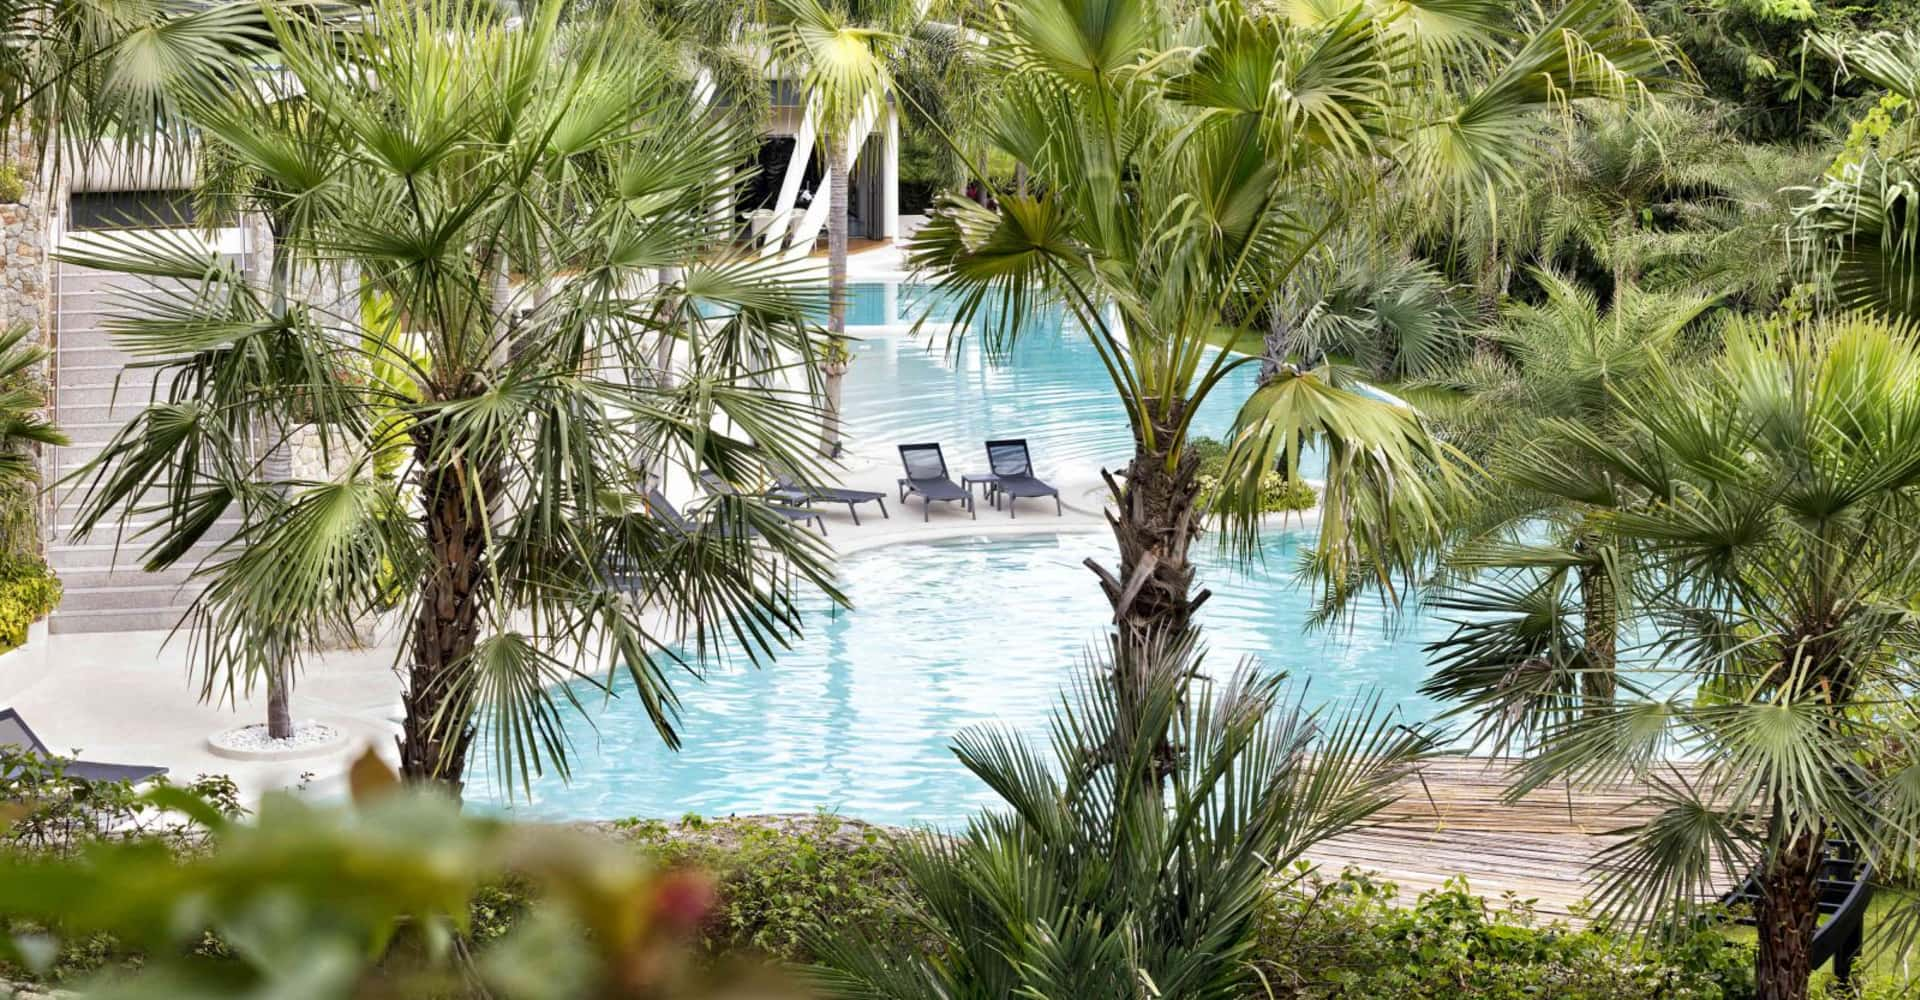 Resort Pools - The Pavilions Phuket